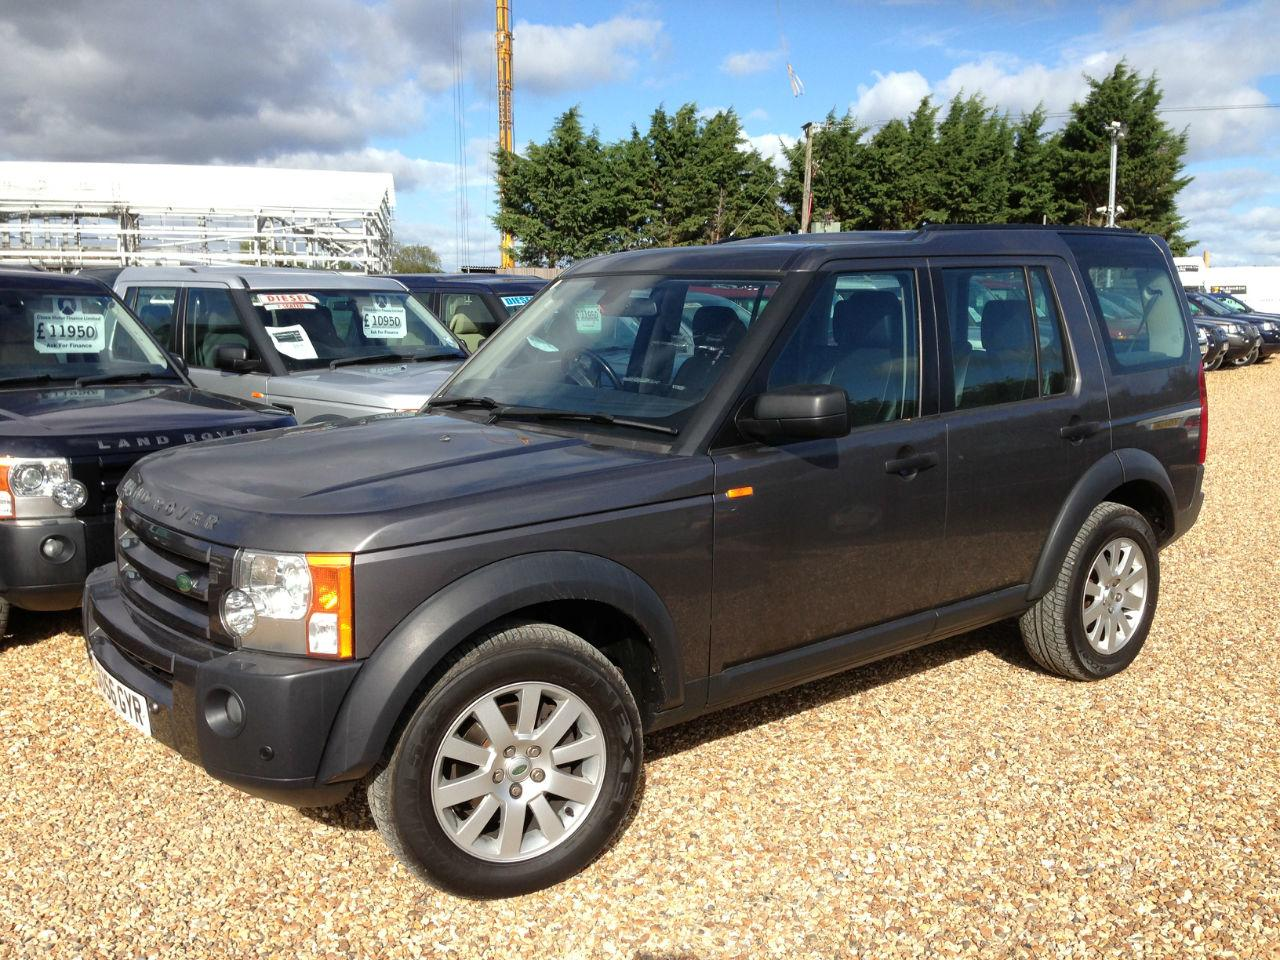 Land Rover Discovery 2.7 Td V6 SE 5DR EXCELLENT CONDITION FULL SERVICE HISTORY 7 SEATER BLACK LEATHER Four Wheel Drive Diesel Grey